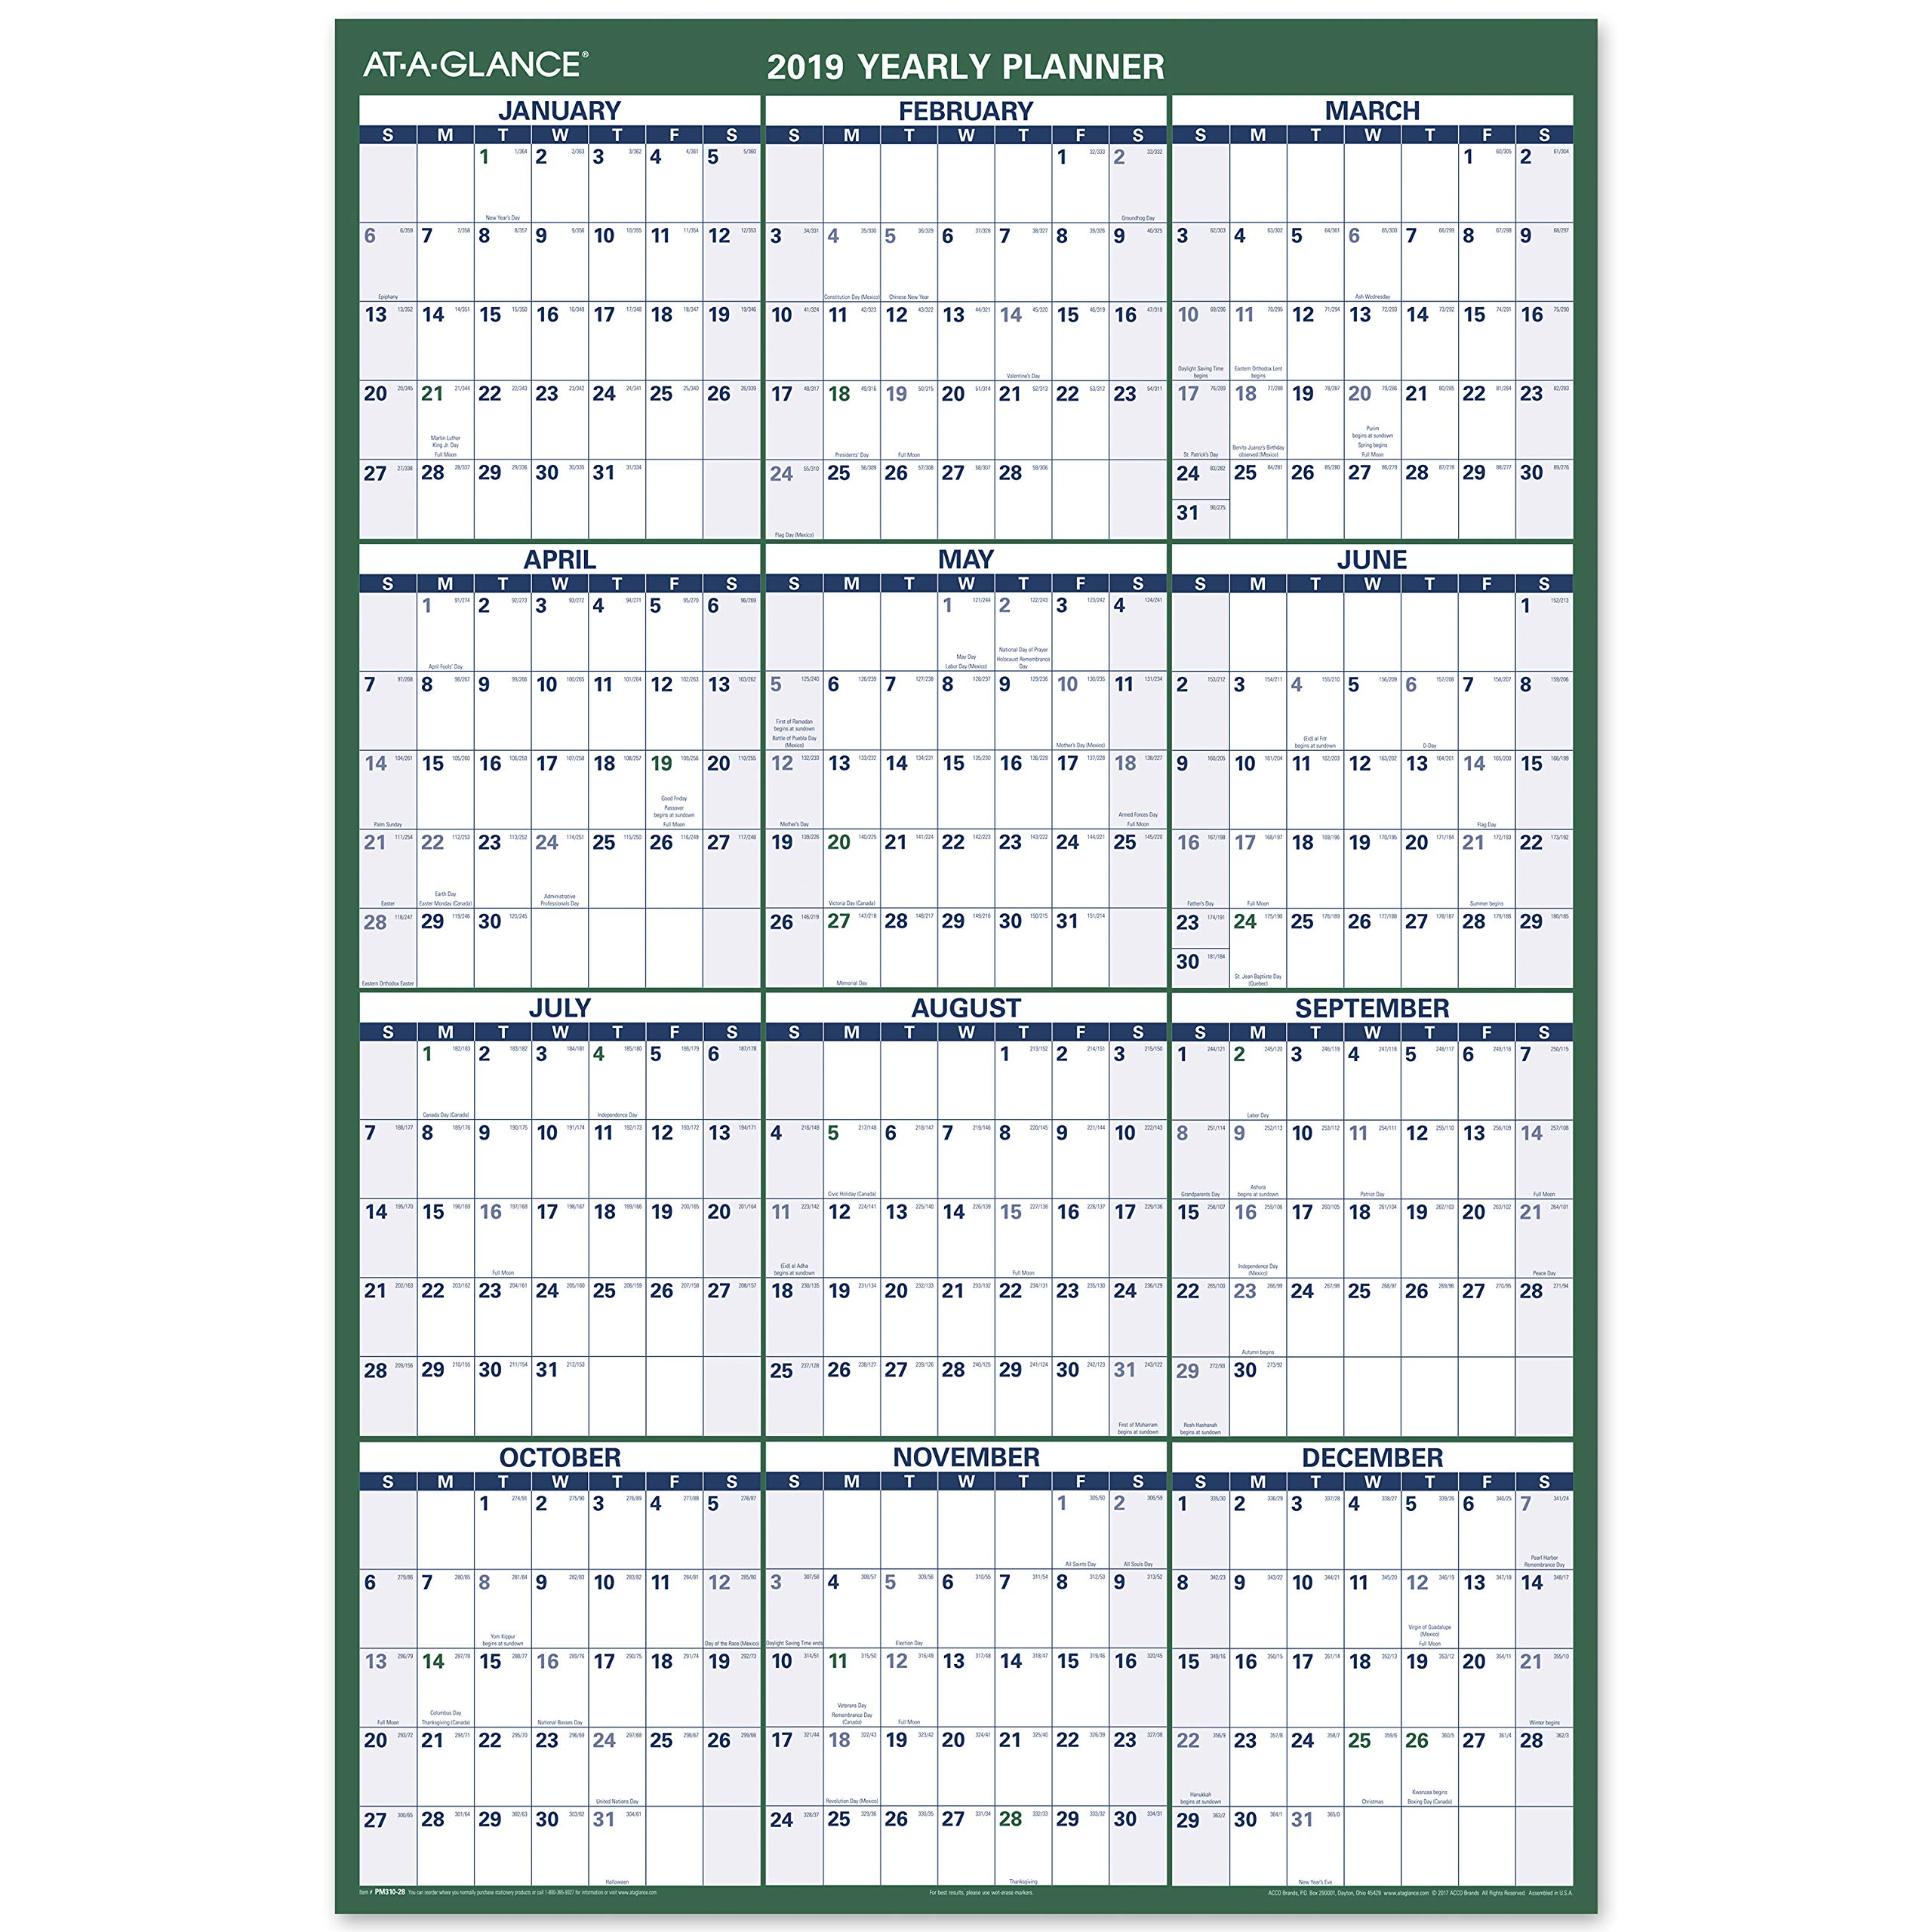 AT-A-GLANCE Wall Calendar, January 2019 - December 2019, 48'' x 32'', Reversible, Erasable, Vertical (PM31028) by AT-A-GLANCE